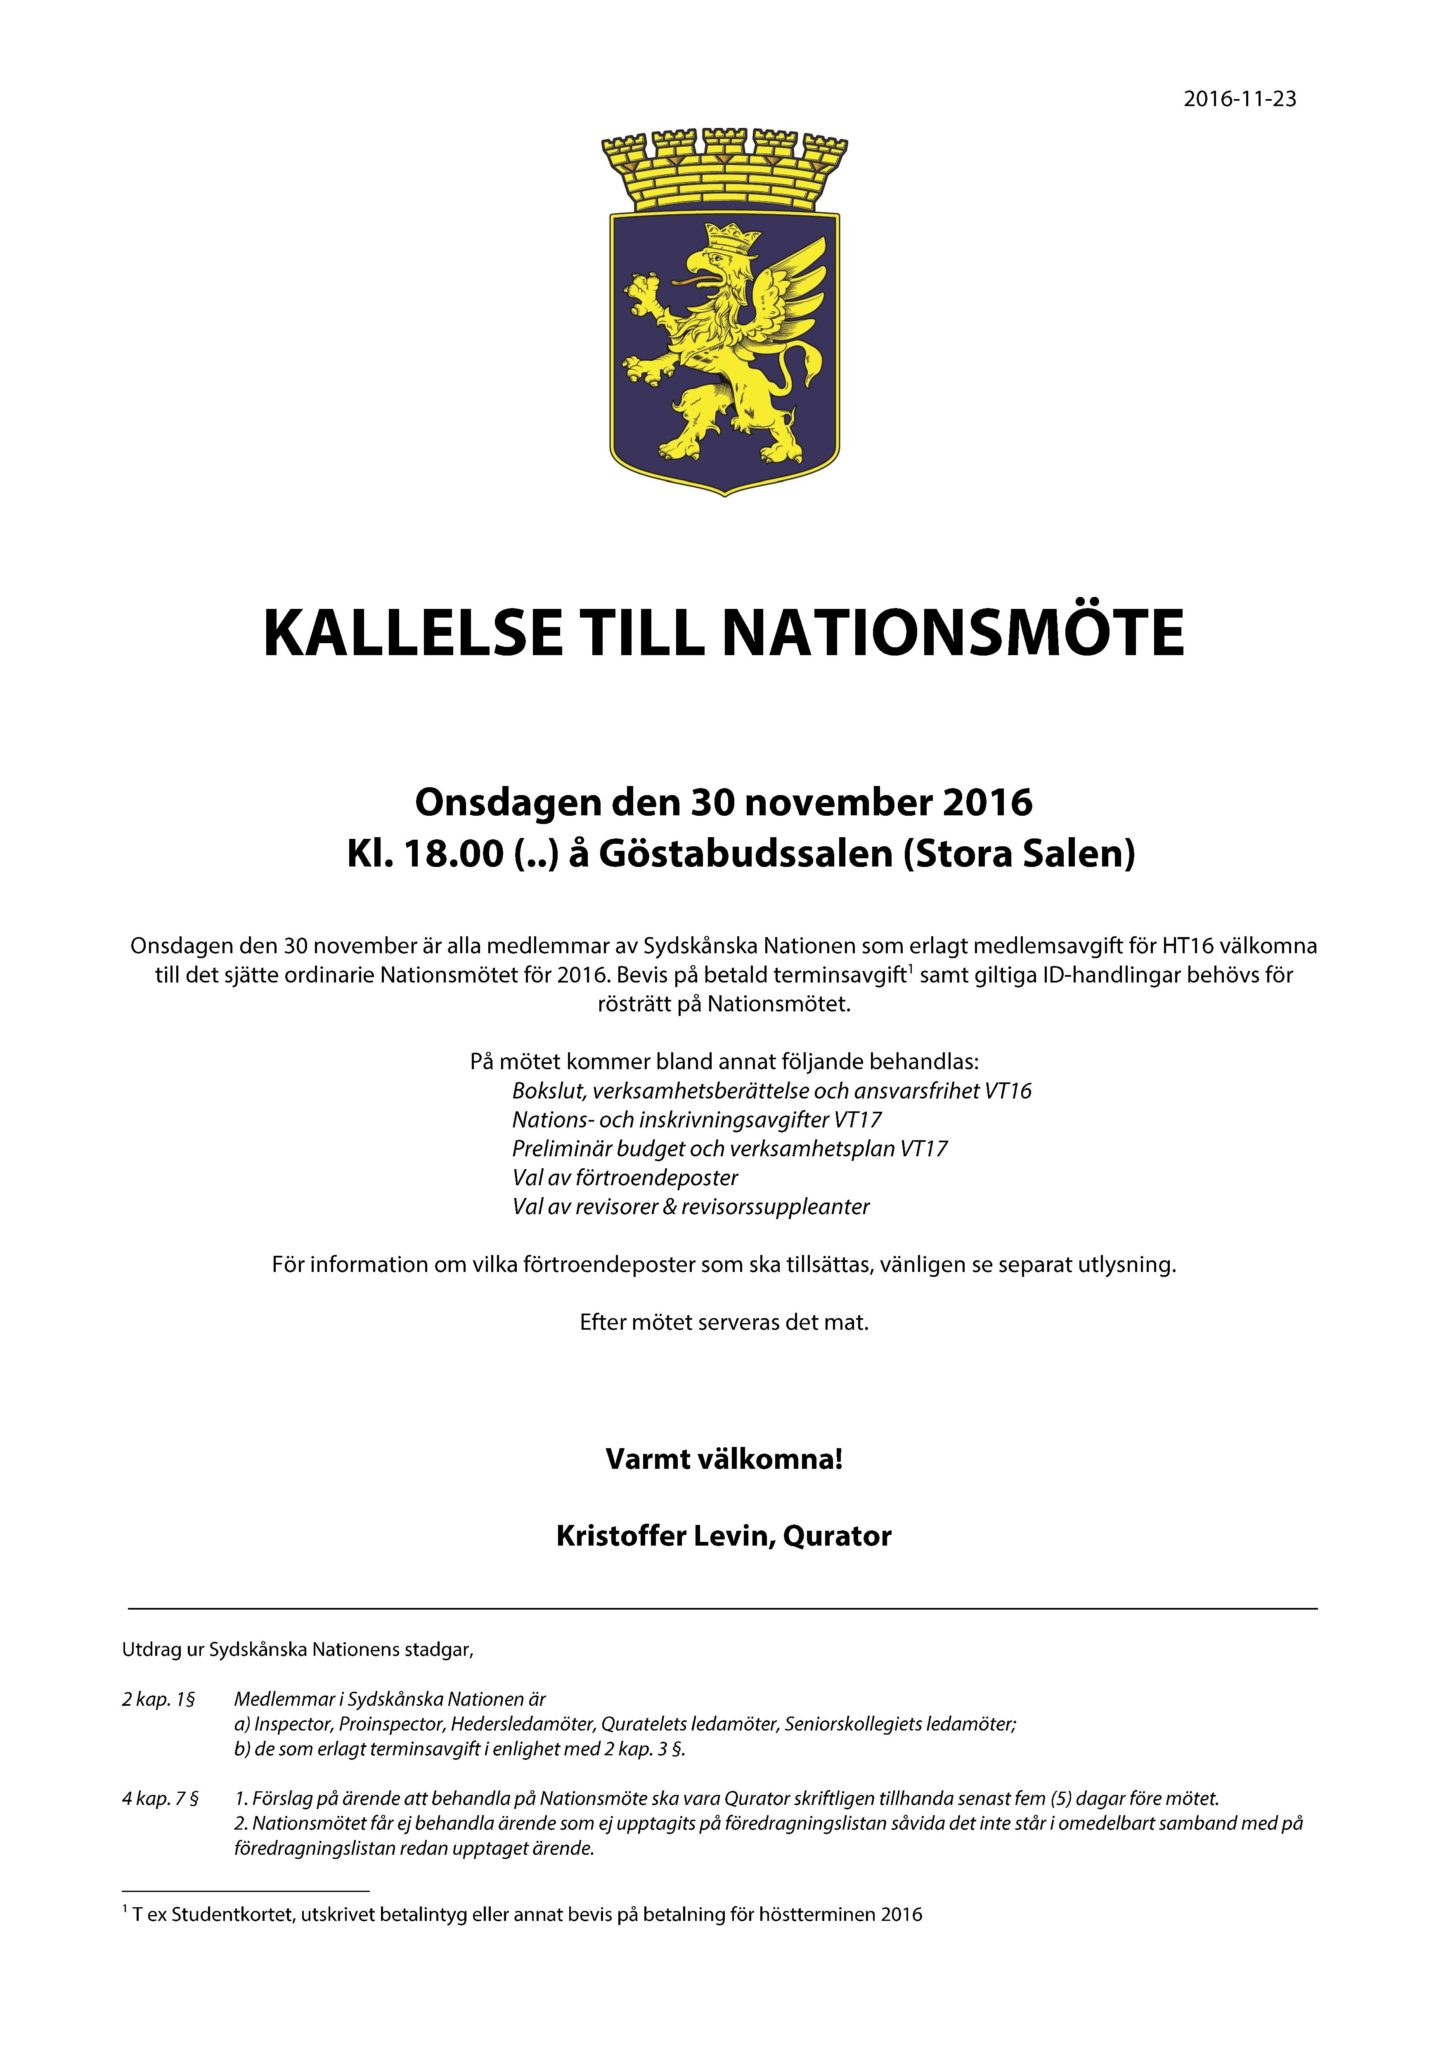 kallelse-till-nationsmote-2016-05-11